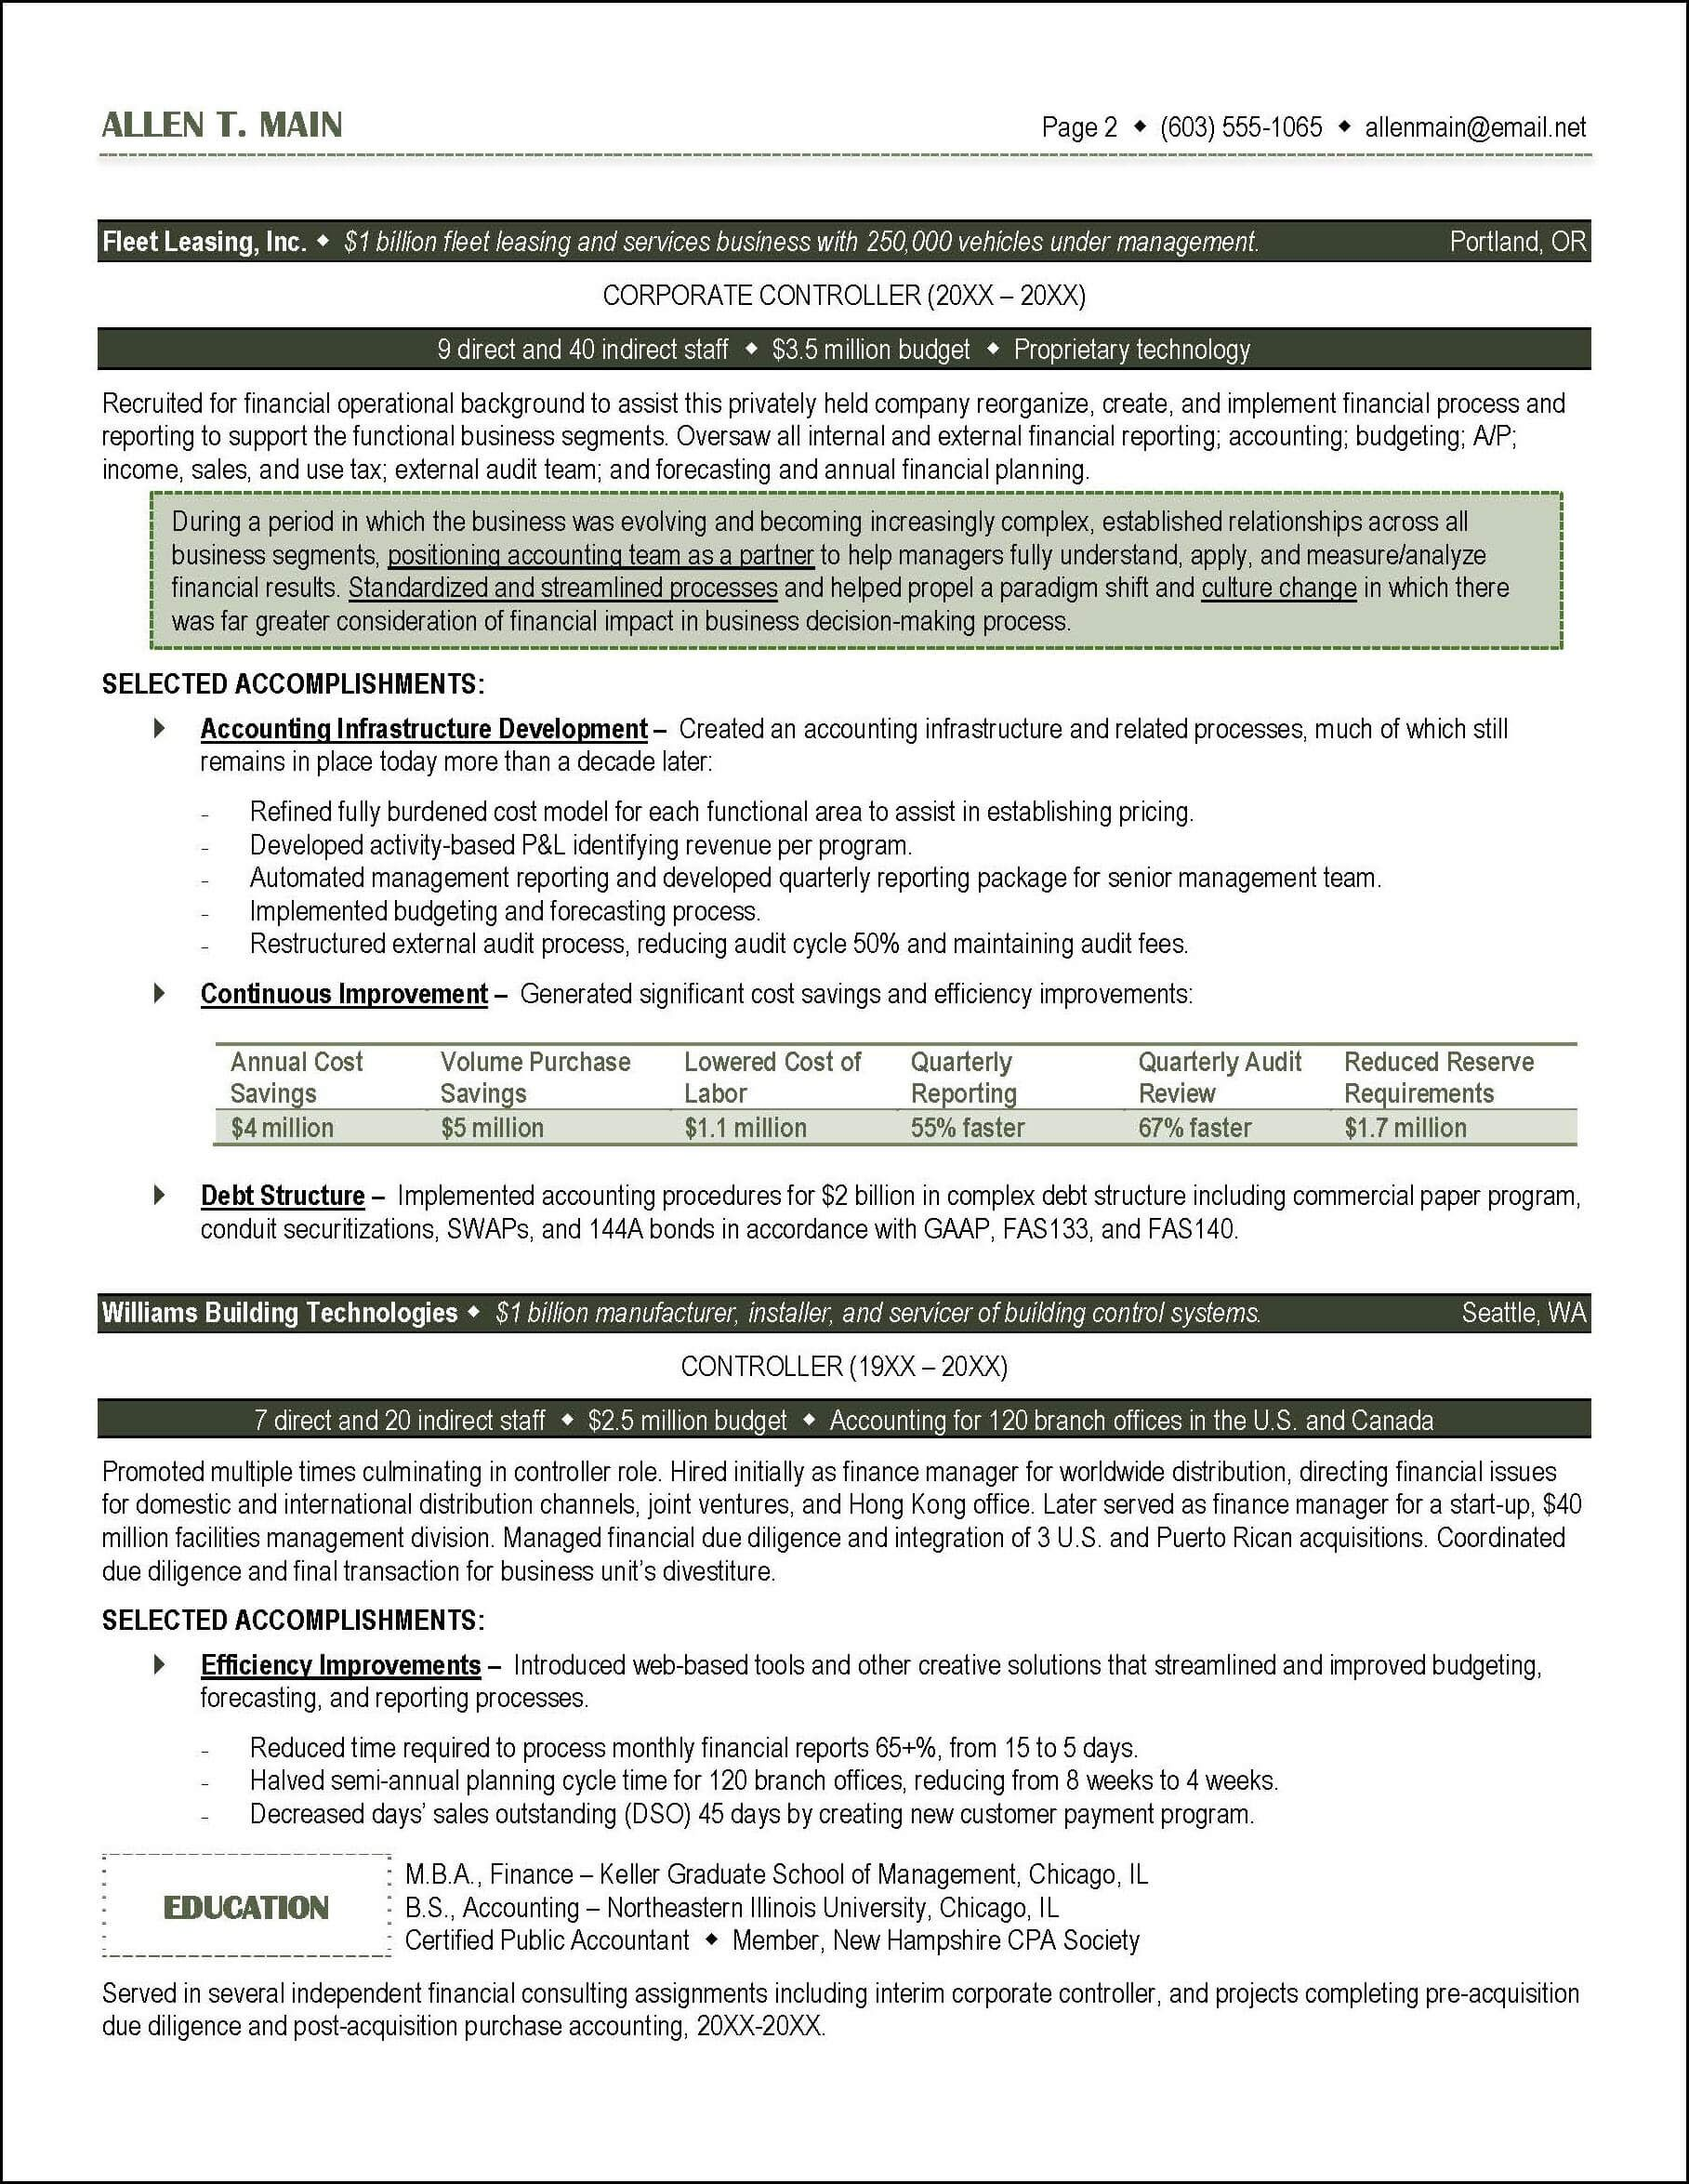 accounting resume example distinctive documents formatting ideas mistakes faq about - Budget Accountant Sample Resume